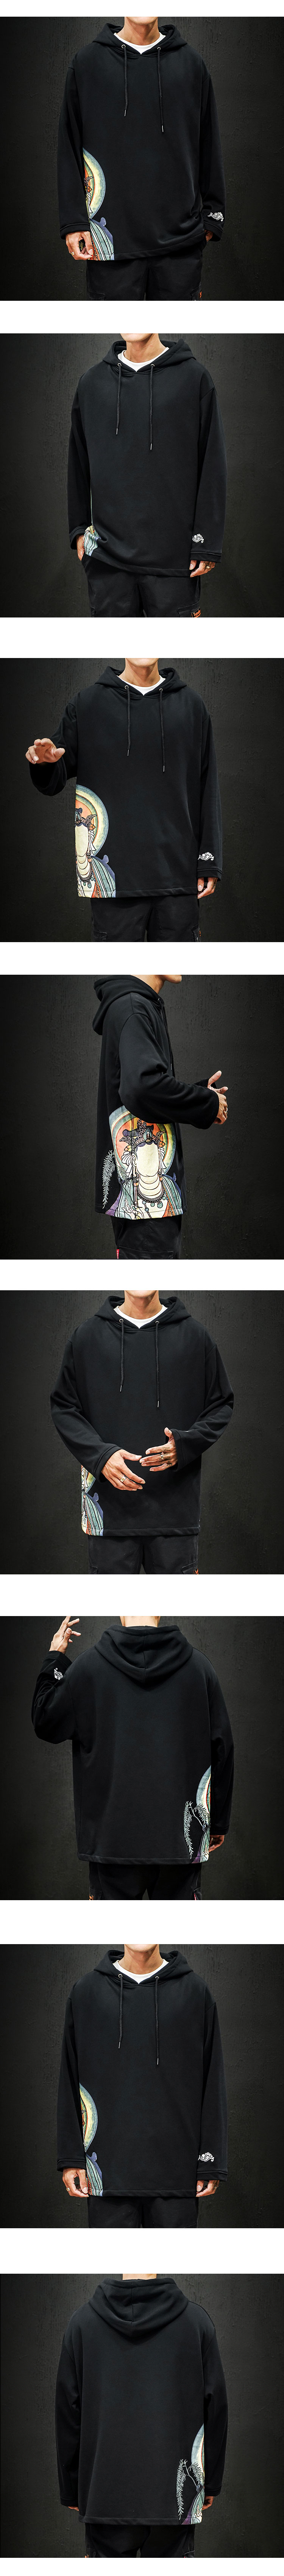 Solid Causal Hooded Sweatshirt